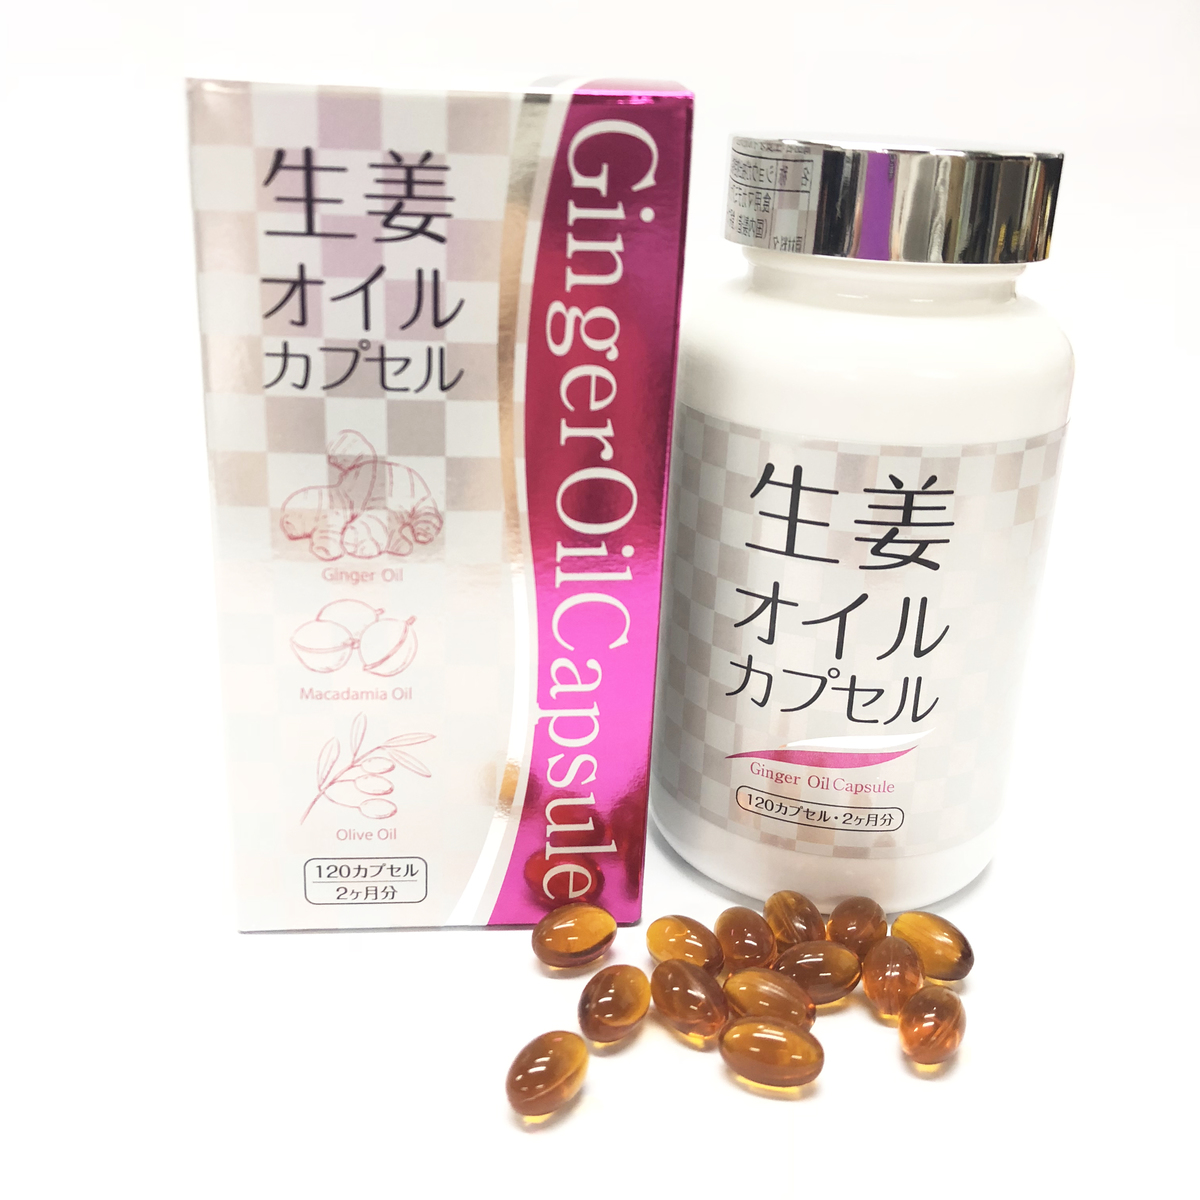 Ginger Oil Capsule 120cap[ 2 months Qty] -[Parallel Import Product]